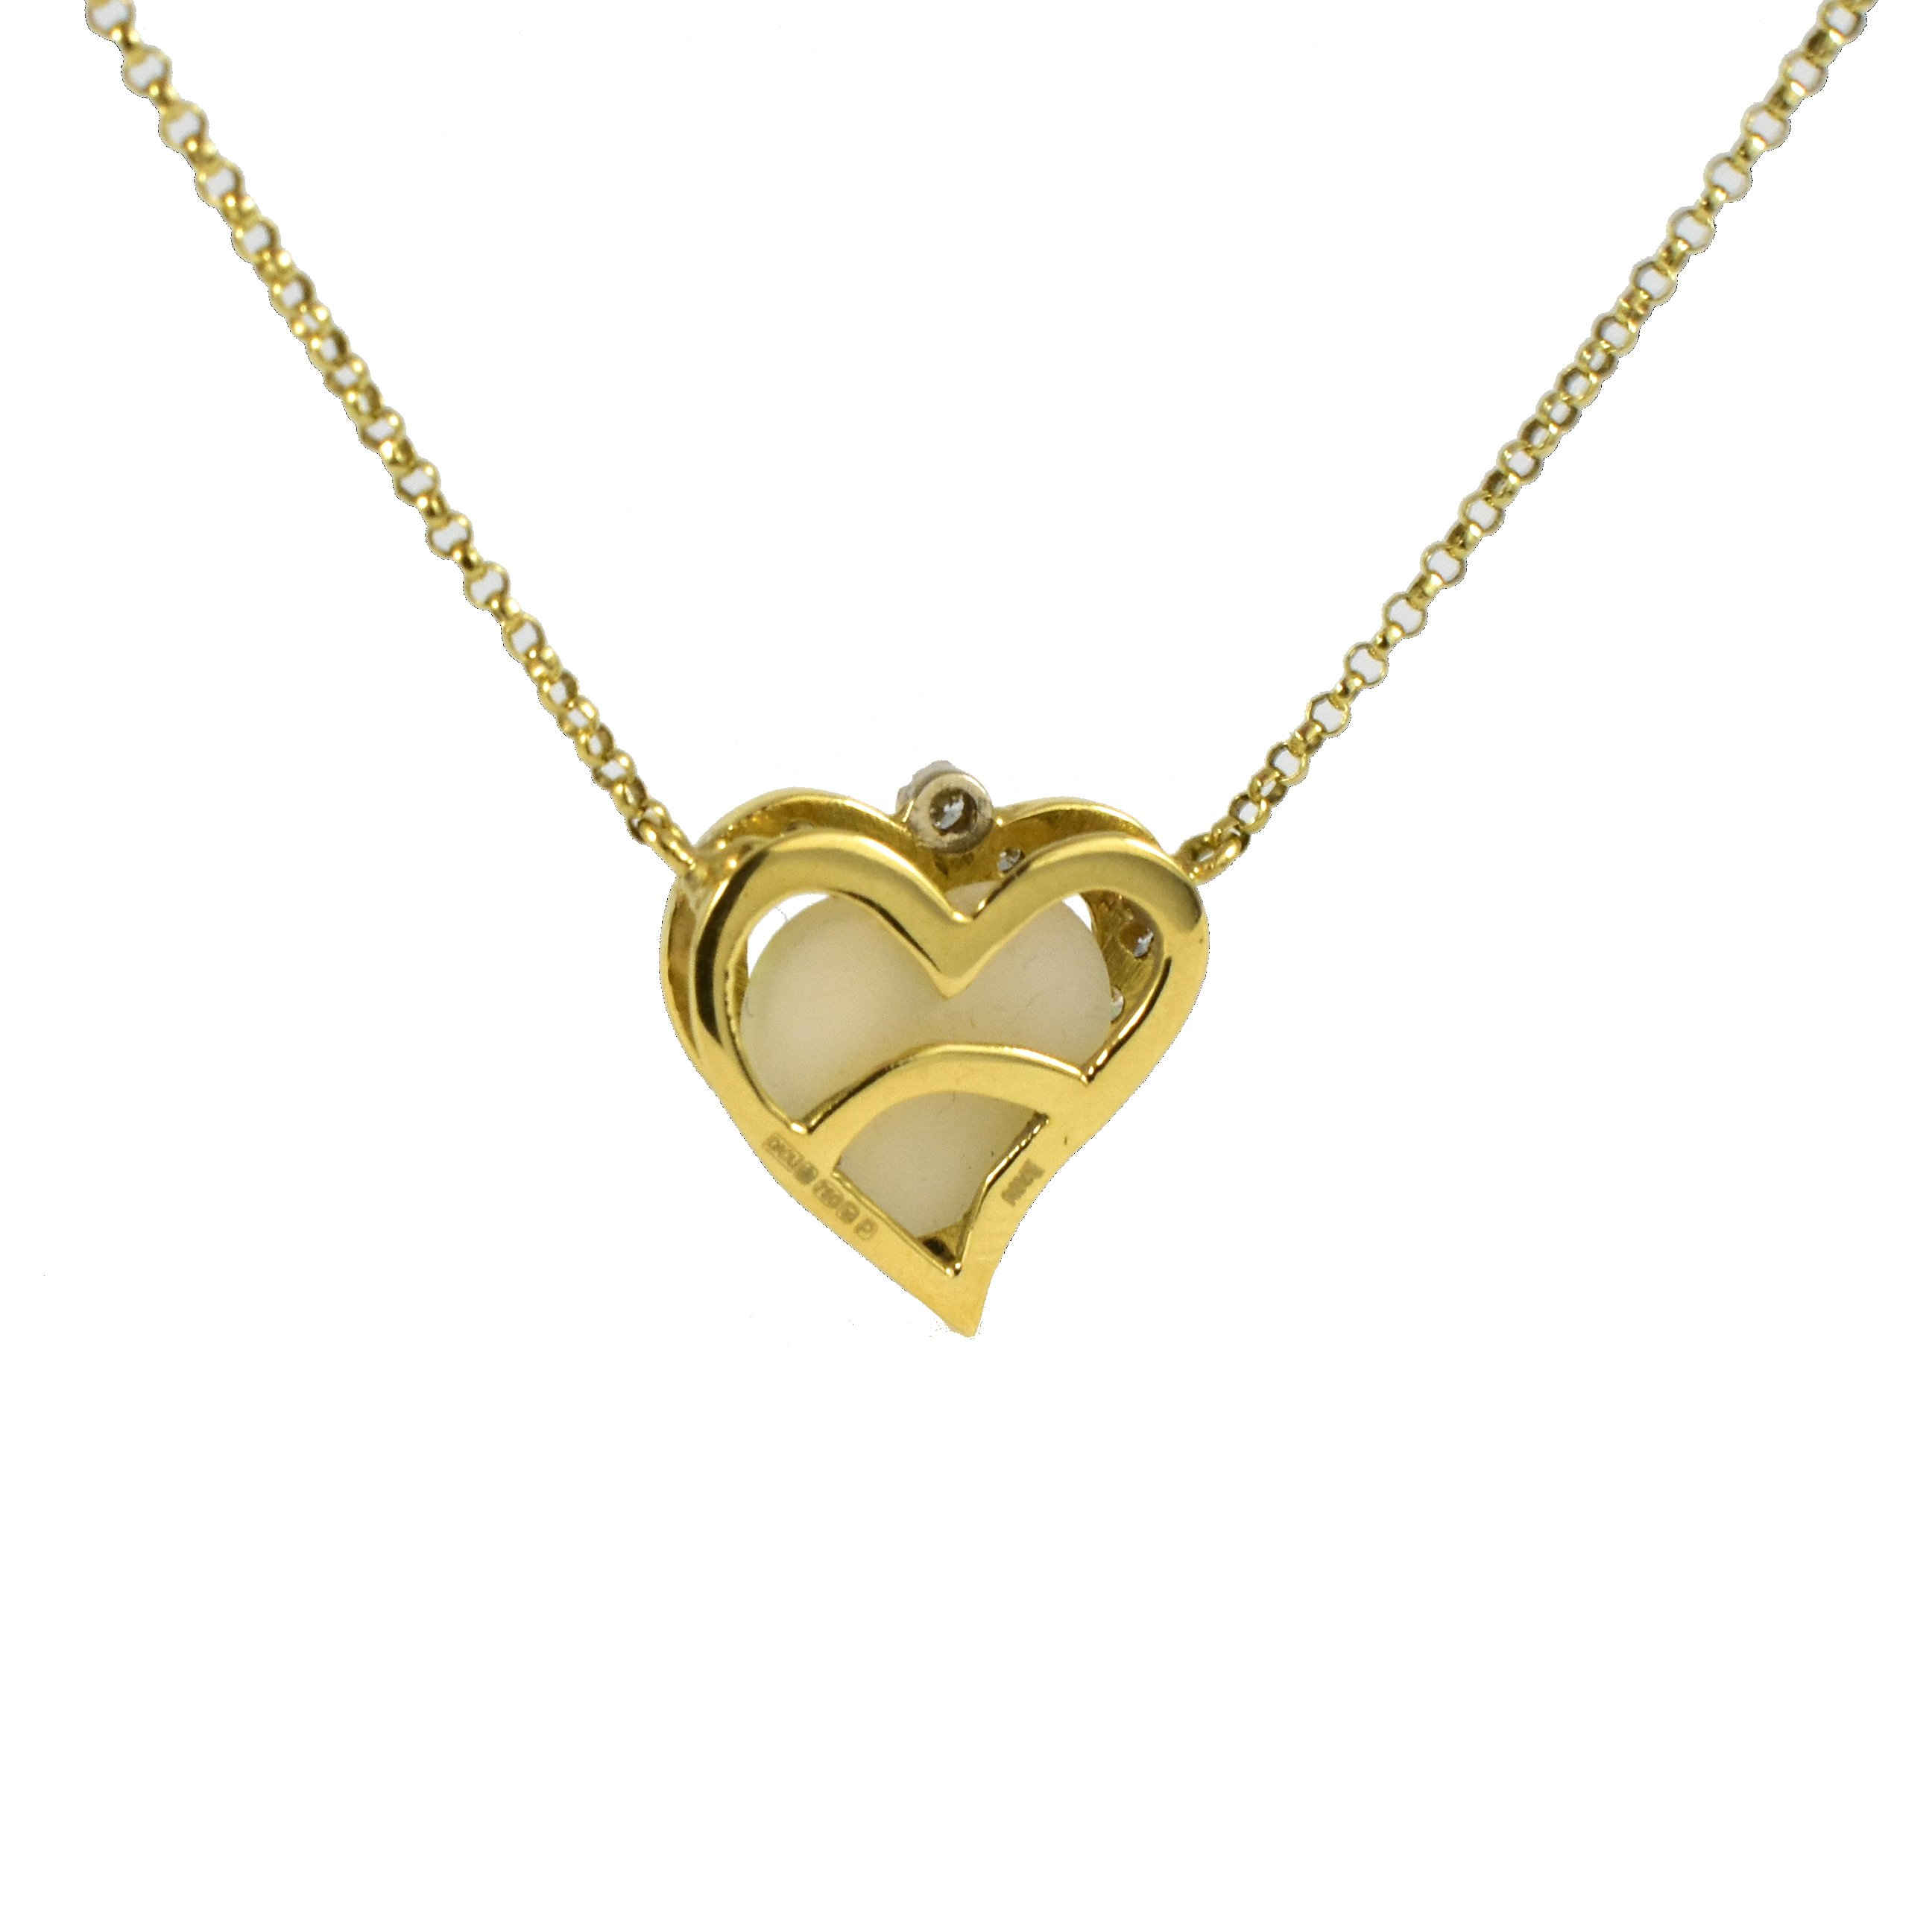 Daou Jewellery 18kt Gold & Diamond Full Heart Pendant - 16 inch, 40 cm